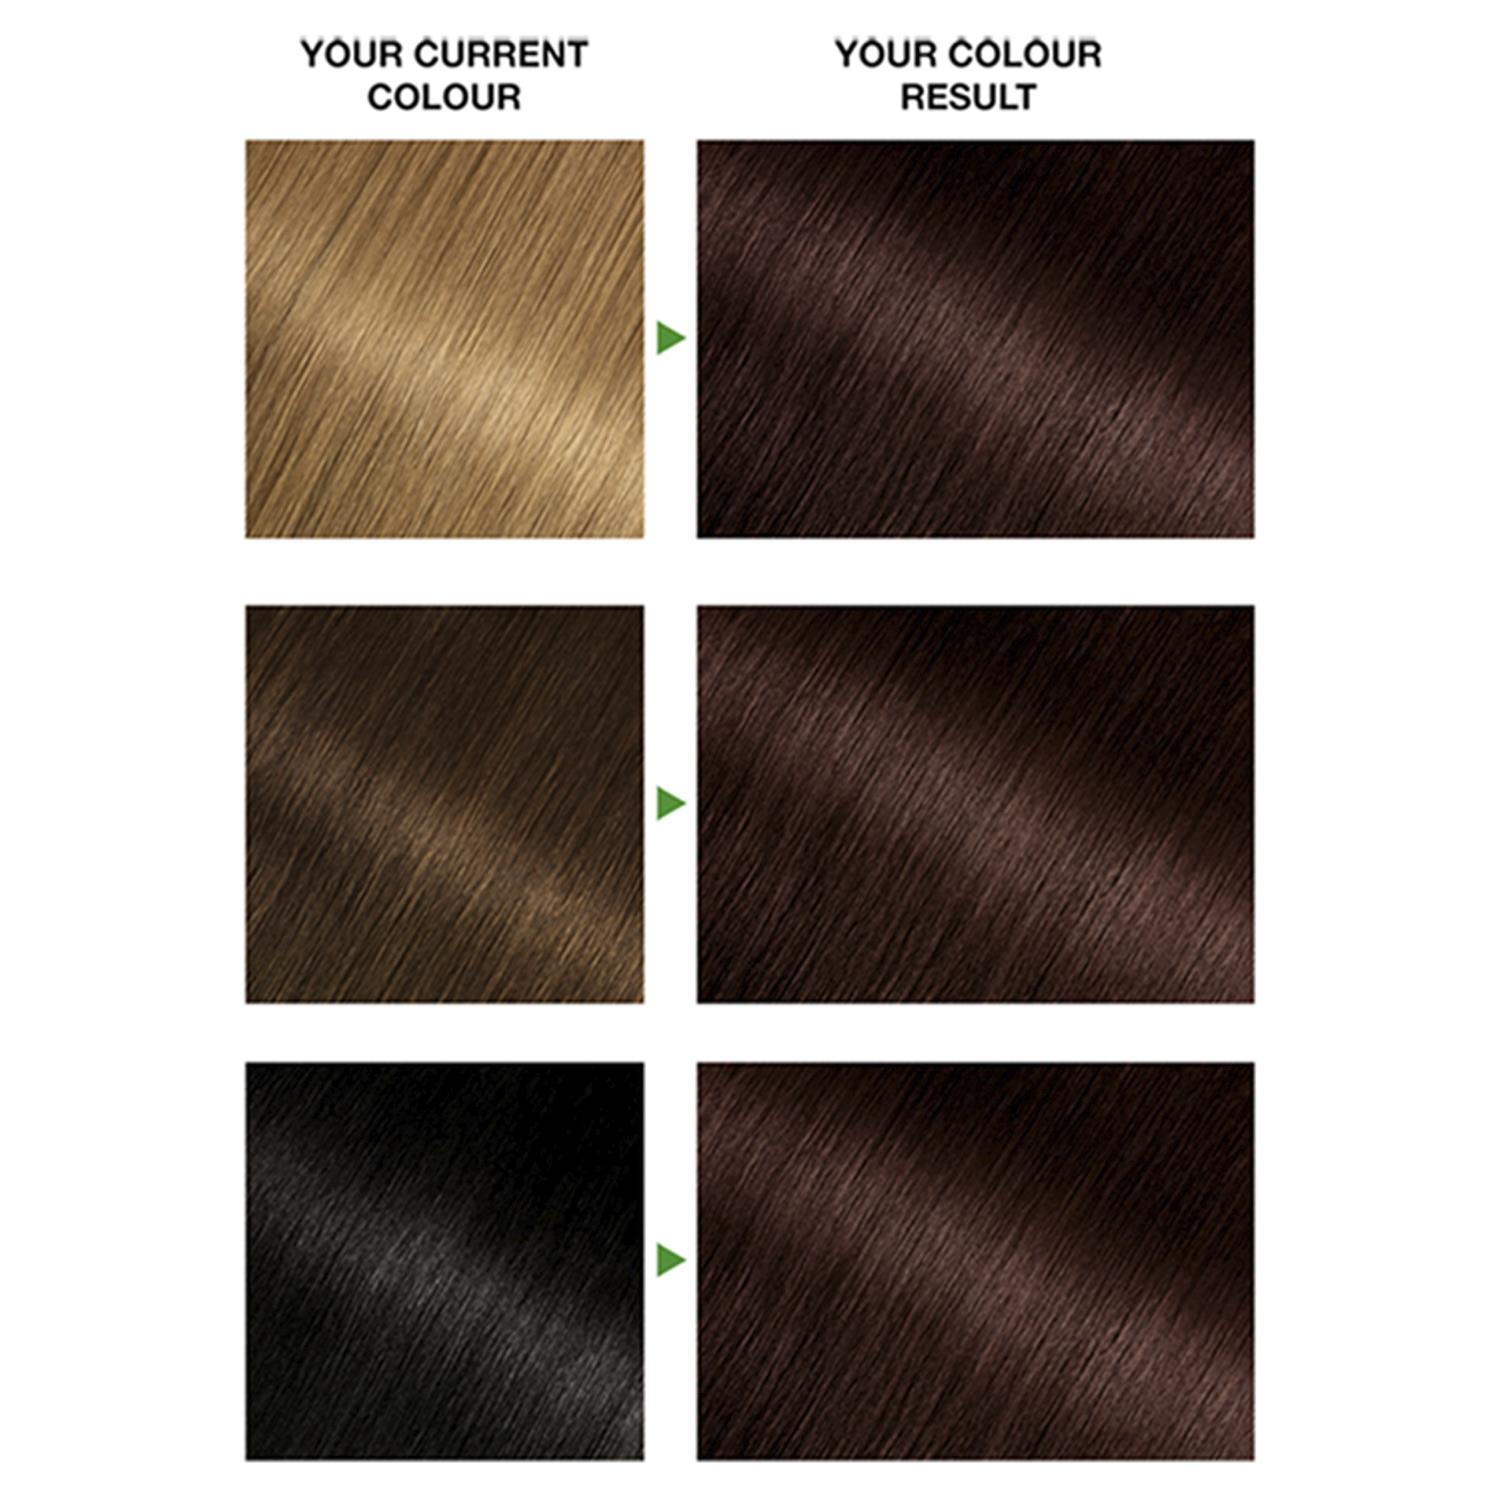 thumbnail 59 - 3 Pack Garnier Nutrisse Permanent Hair Dye With Different Shades